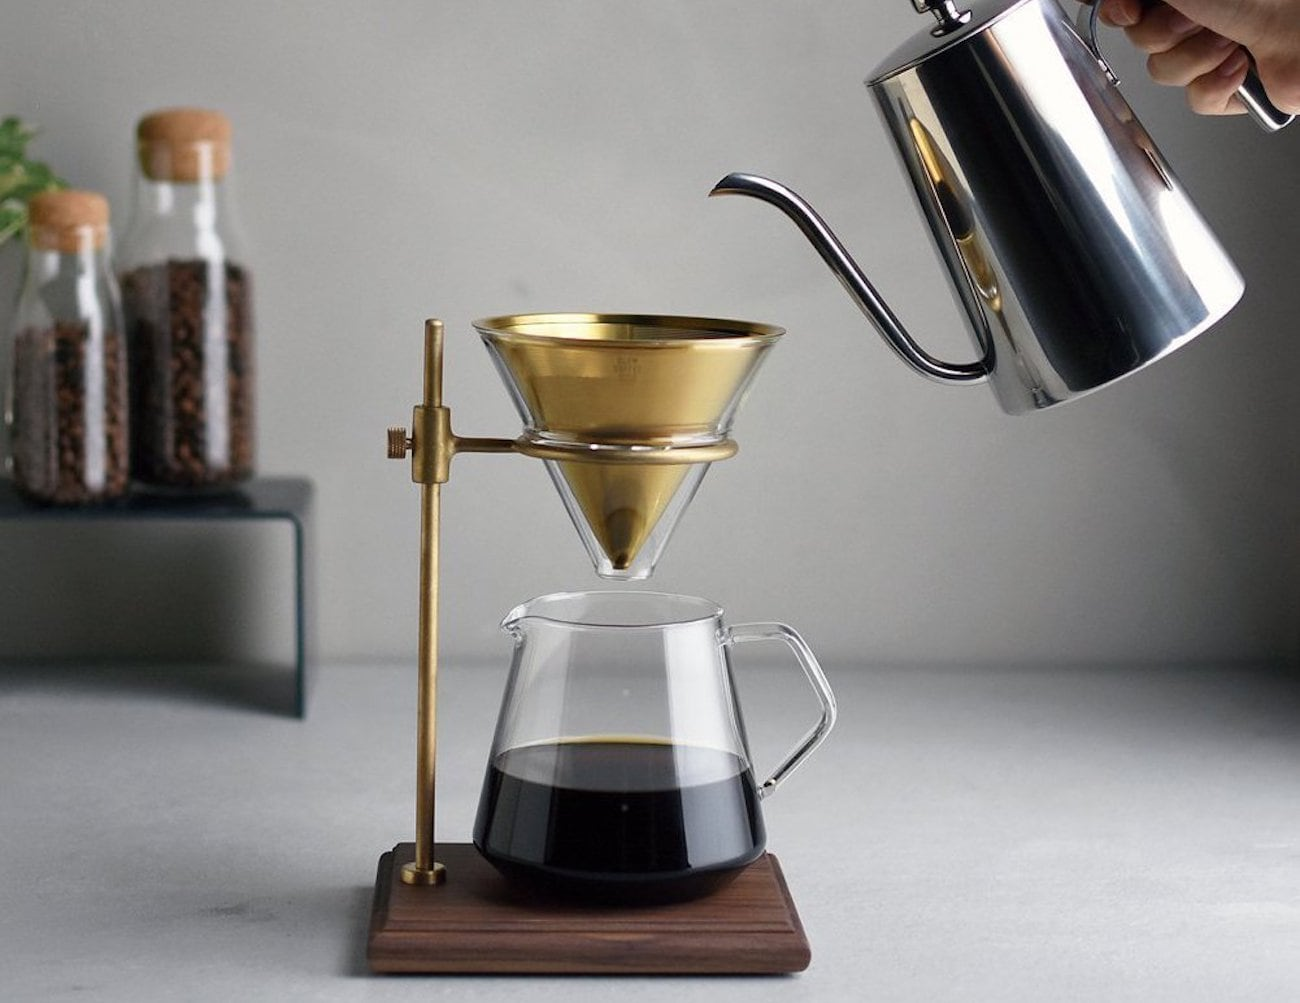 Kinto 5-Piece Coffee Brewer Stand Set helps you savor the brewing process